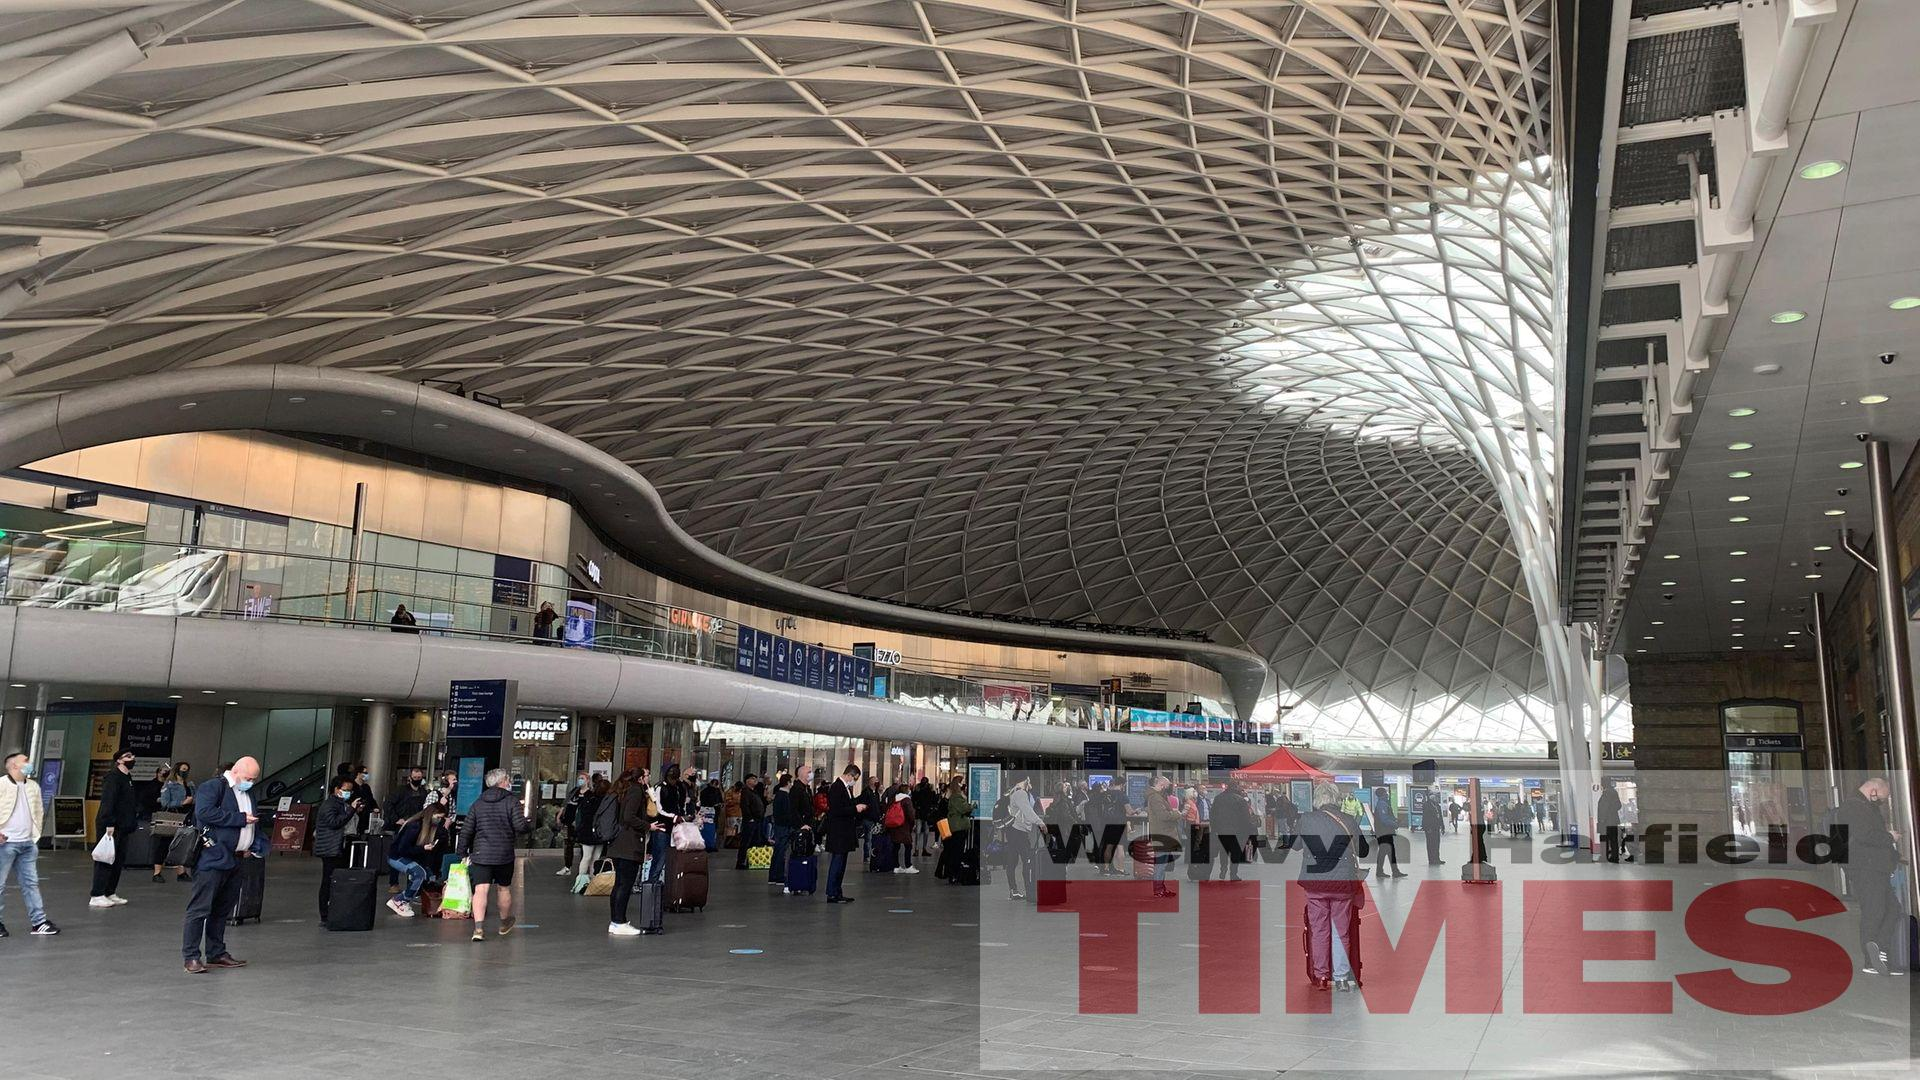 Three-day closure at King's Cross station from April 23-25